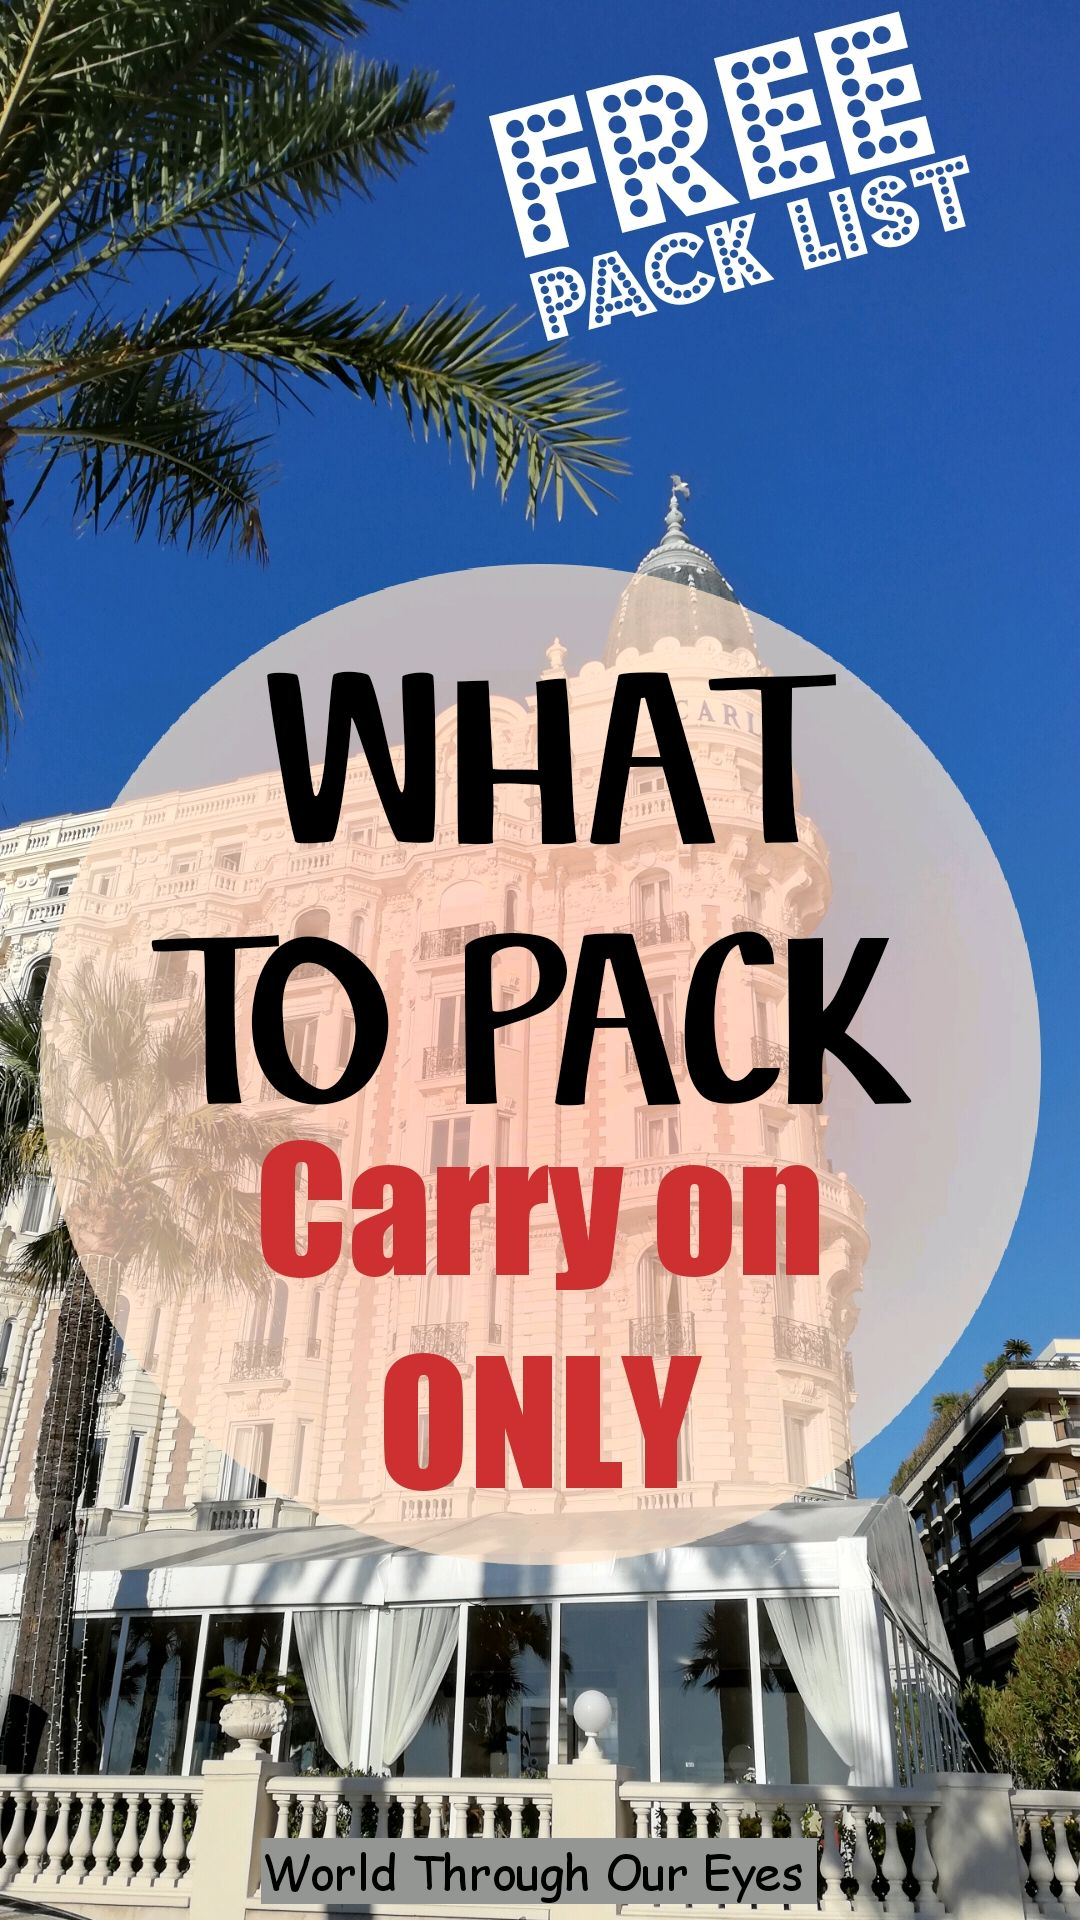 Pack your carry on like a pro with this packing guide. Find out how to travel with just a carry-on and enjoy your next travel adventure luggage free.      #backpacking  #packinglist #travel #traveleurope #carryonfree #packlikeapro #minimalisttravel #travelluggagefree #packingguide #worldthroughoureyes